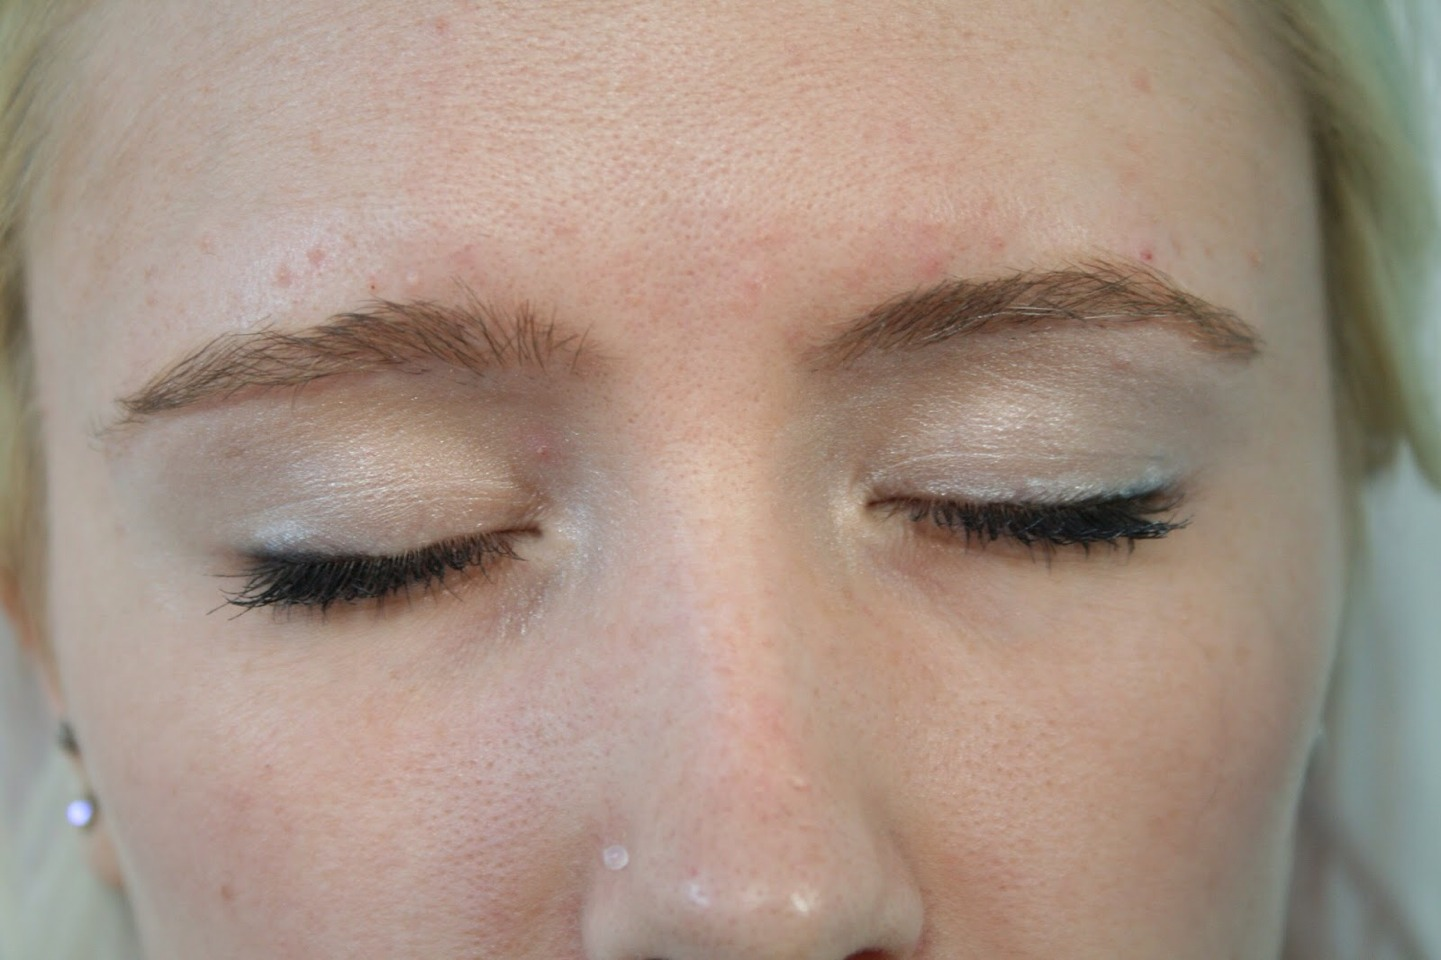 Can make eye lids look shiny with makeup on and you can put it on eye brows to tame them down.